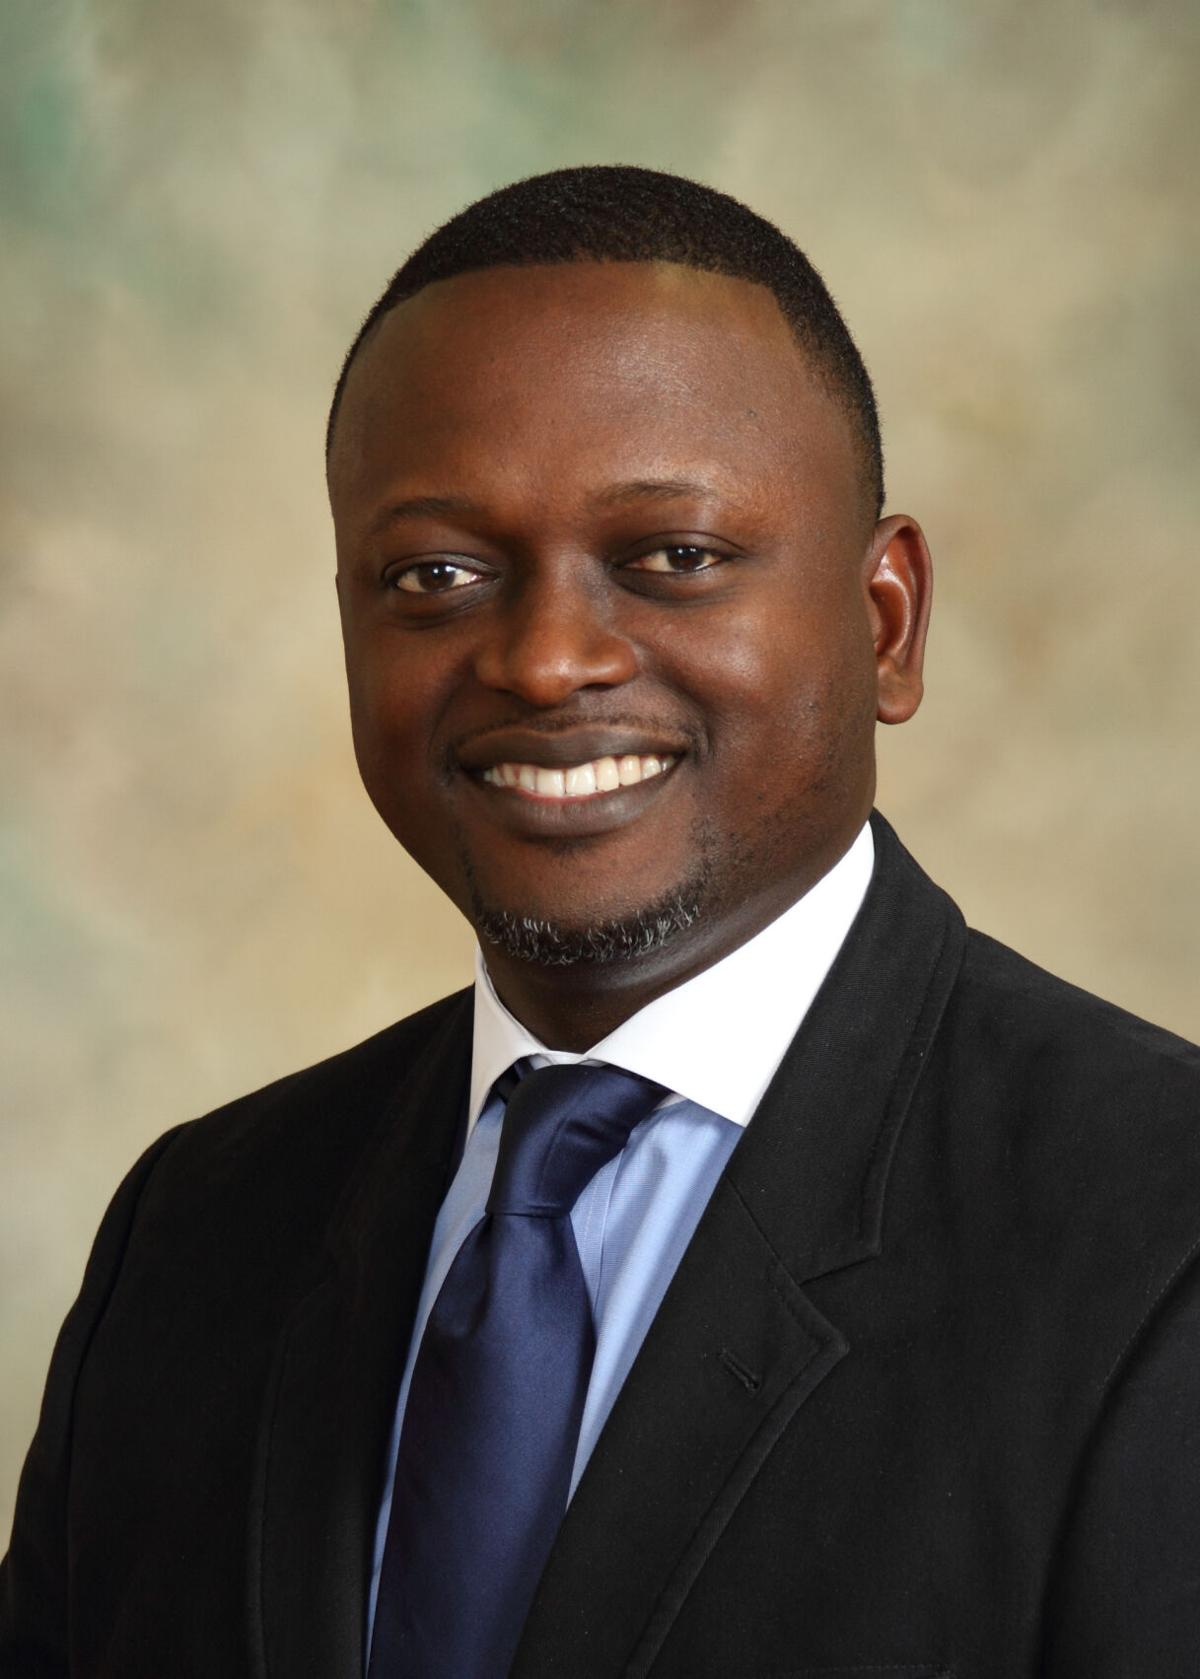 Oluseun Olukayode Alli, MD, Co-Chair for the ABC Structural Heart Disease Task Force and an Interventional Cardiologist at Novant Health Heart & Vascular Institute in Charlotte, NC.